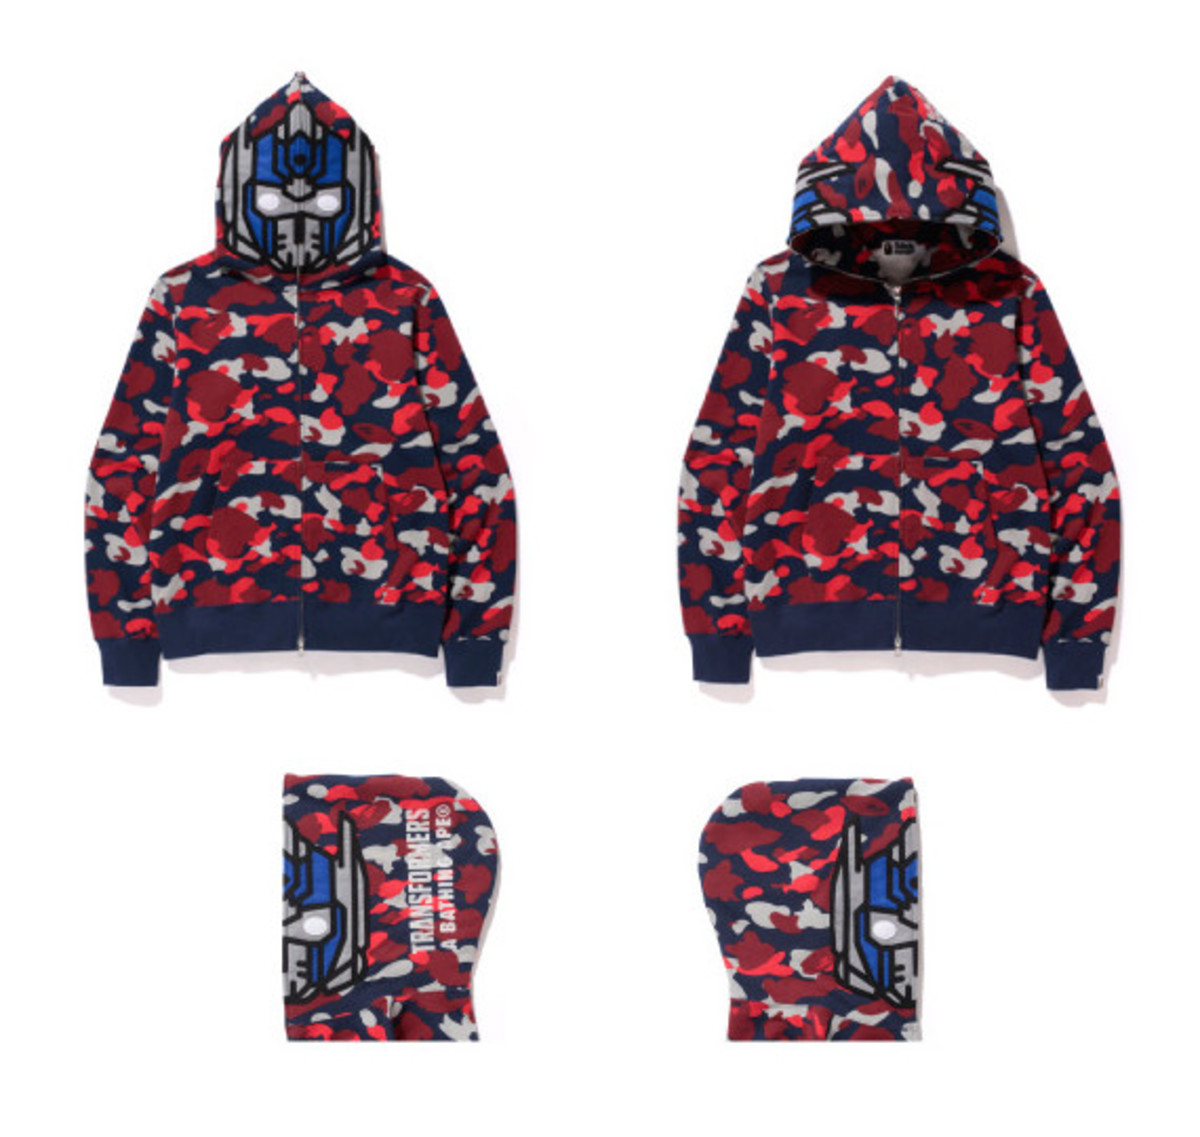 a-bathing-ape-transformers-fall-2014-capsule-collection-02